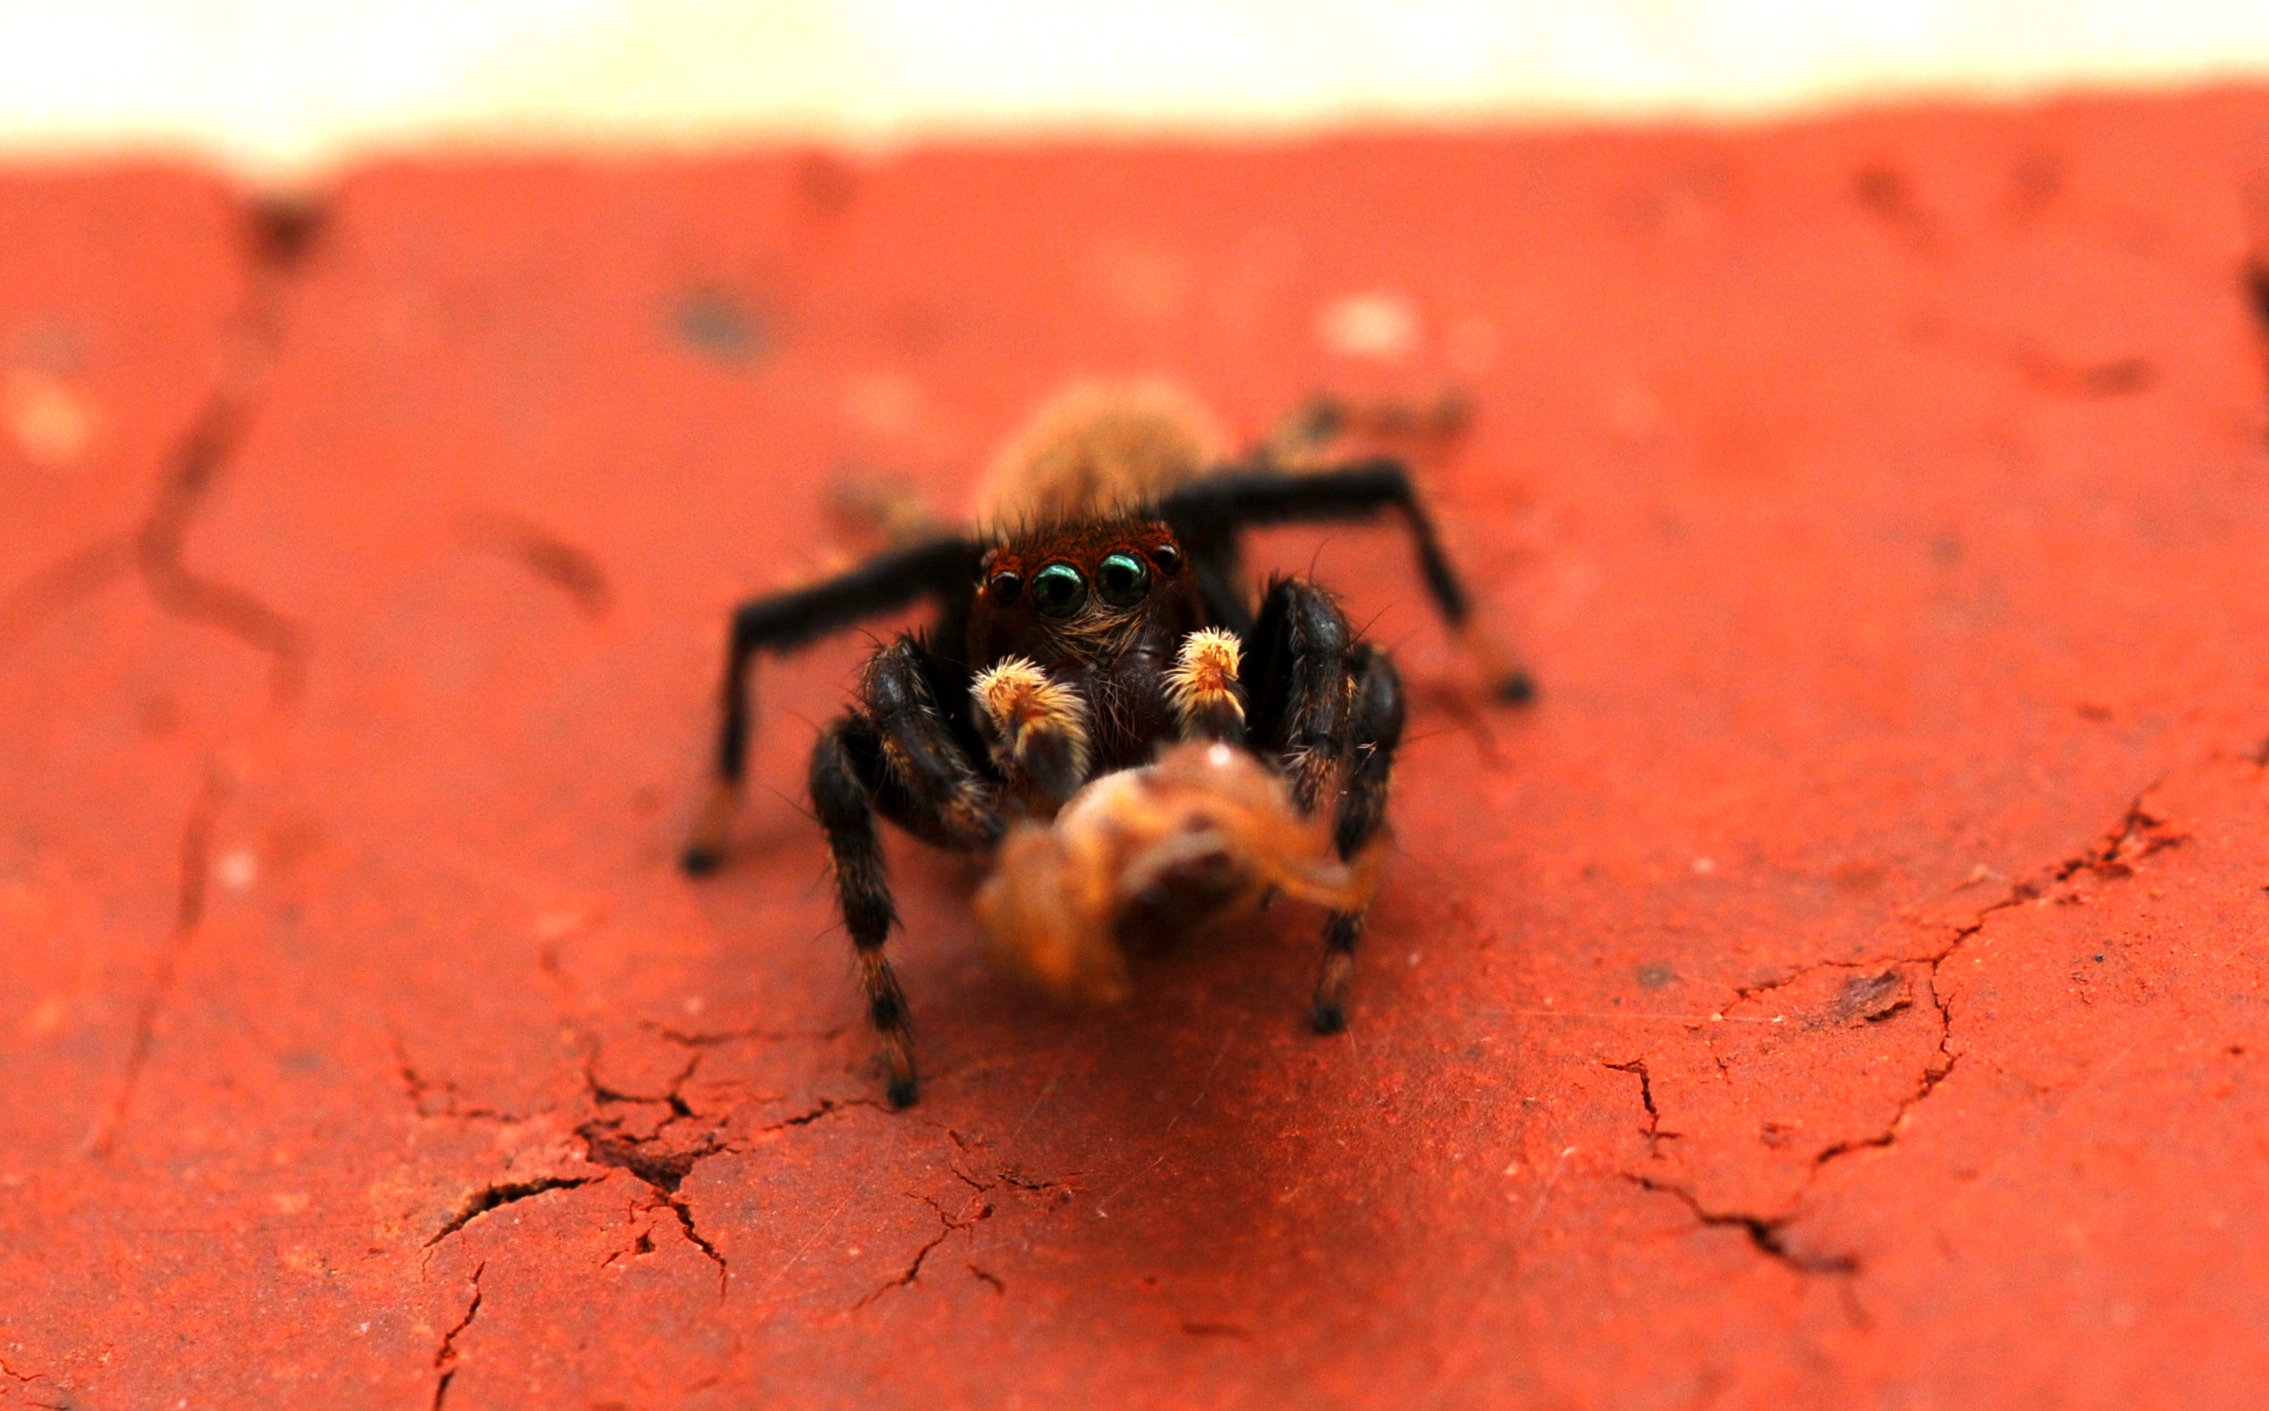 The guide dubs this guy a shaggy, red-headed house hopper. Works for me. He's pictured here with another jumping spider for a meal. Image: Chris McCormack